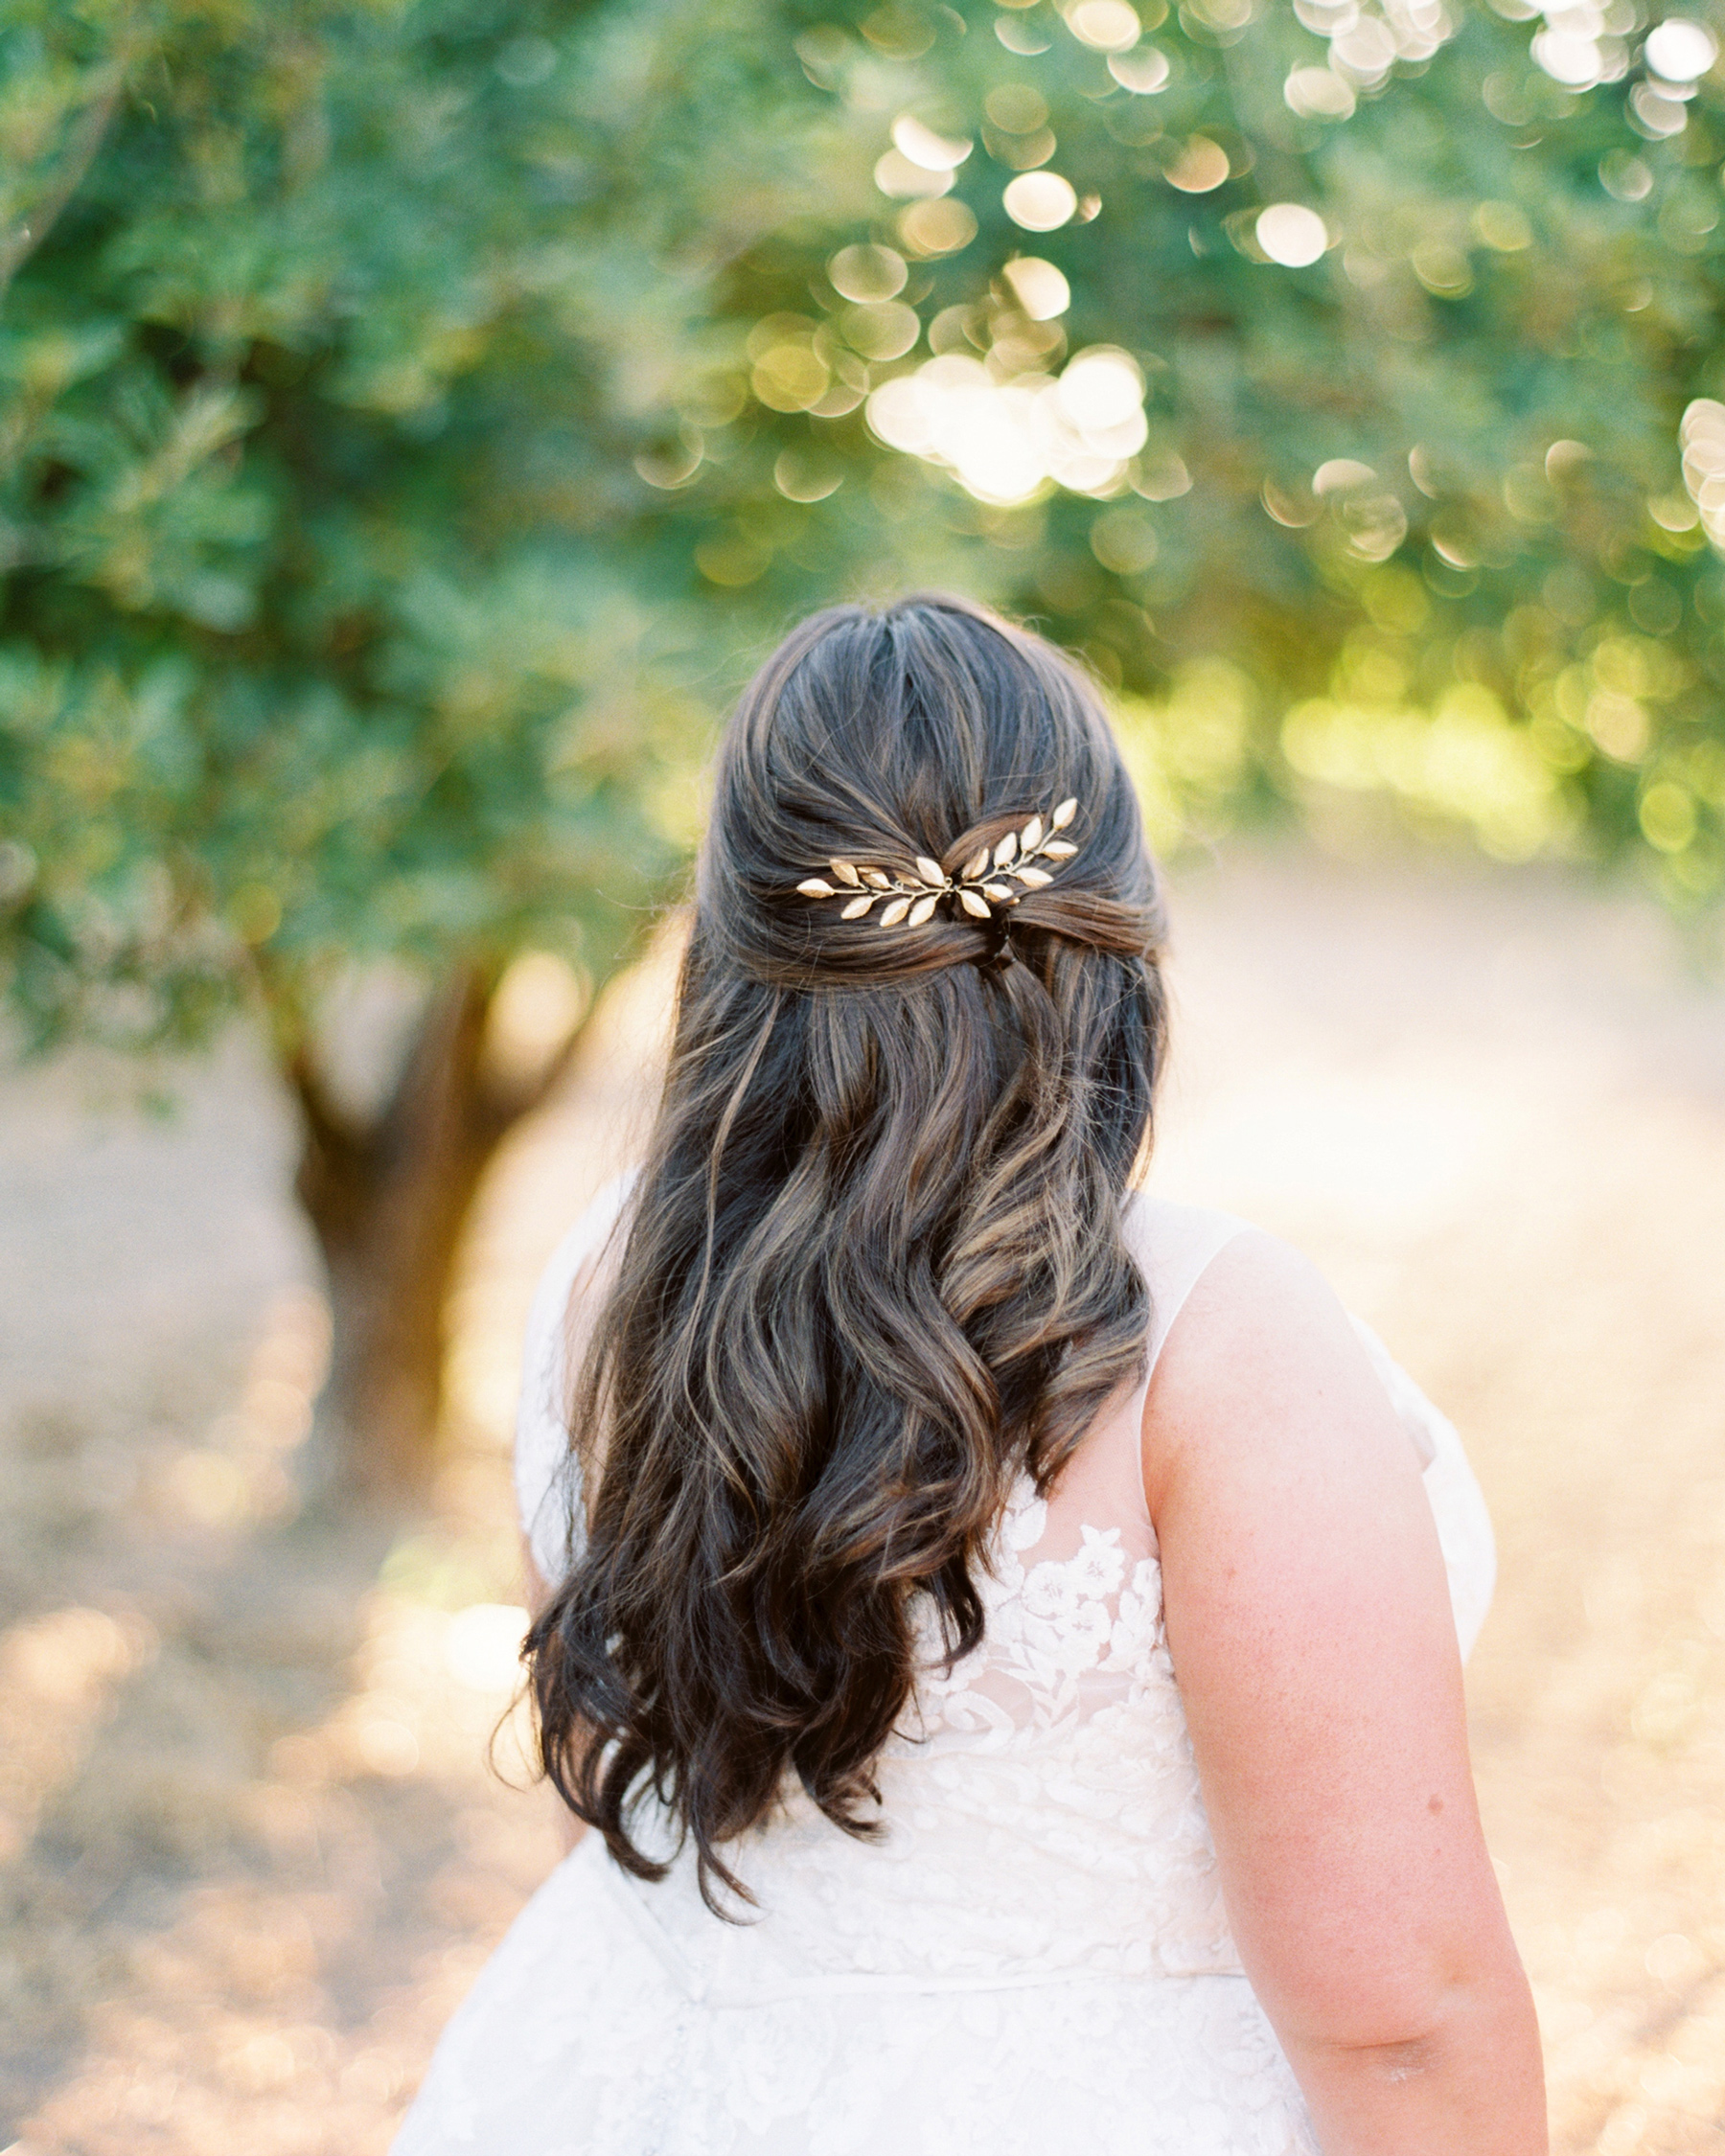 gold leaf hair accessory half-up half-down style